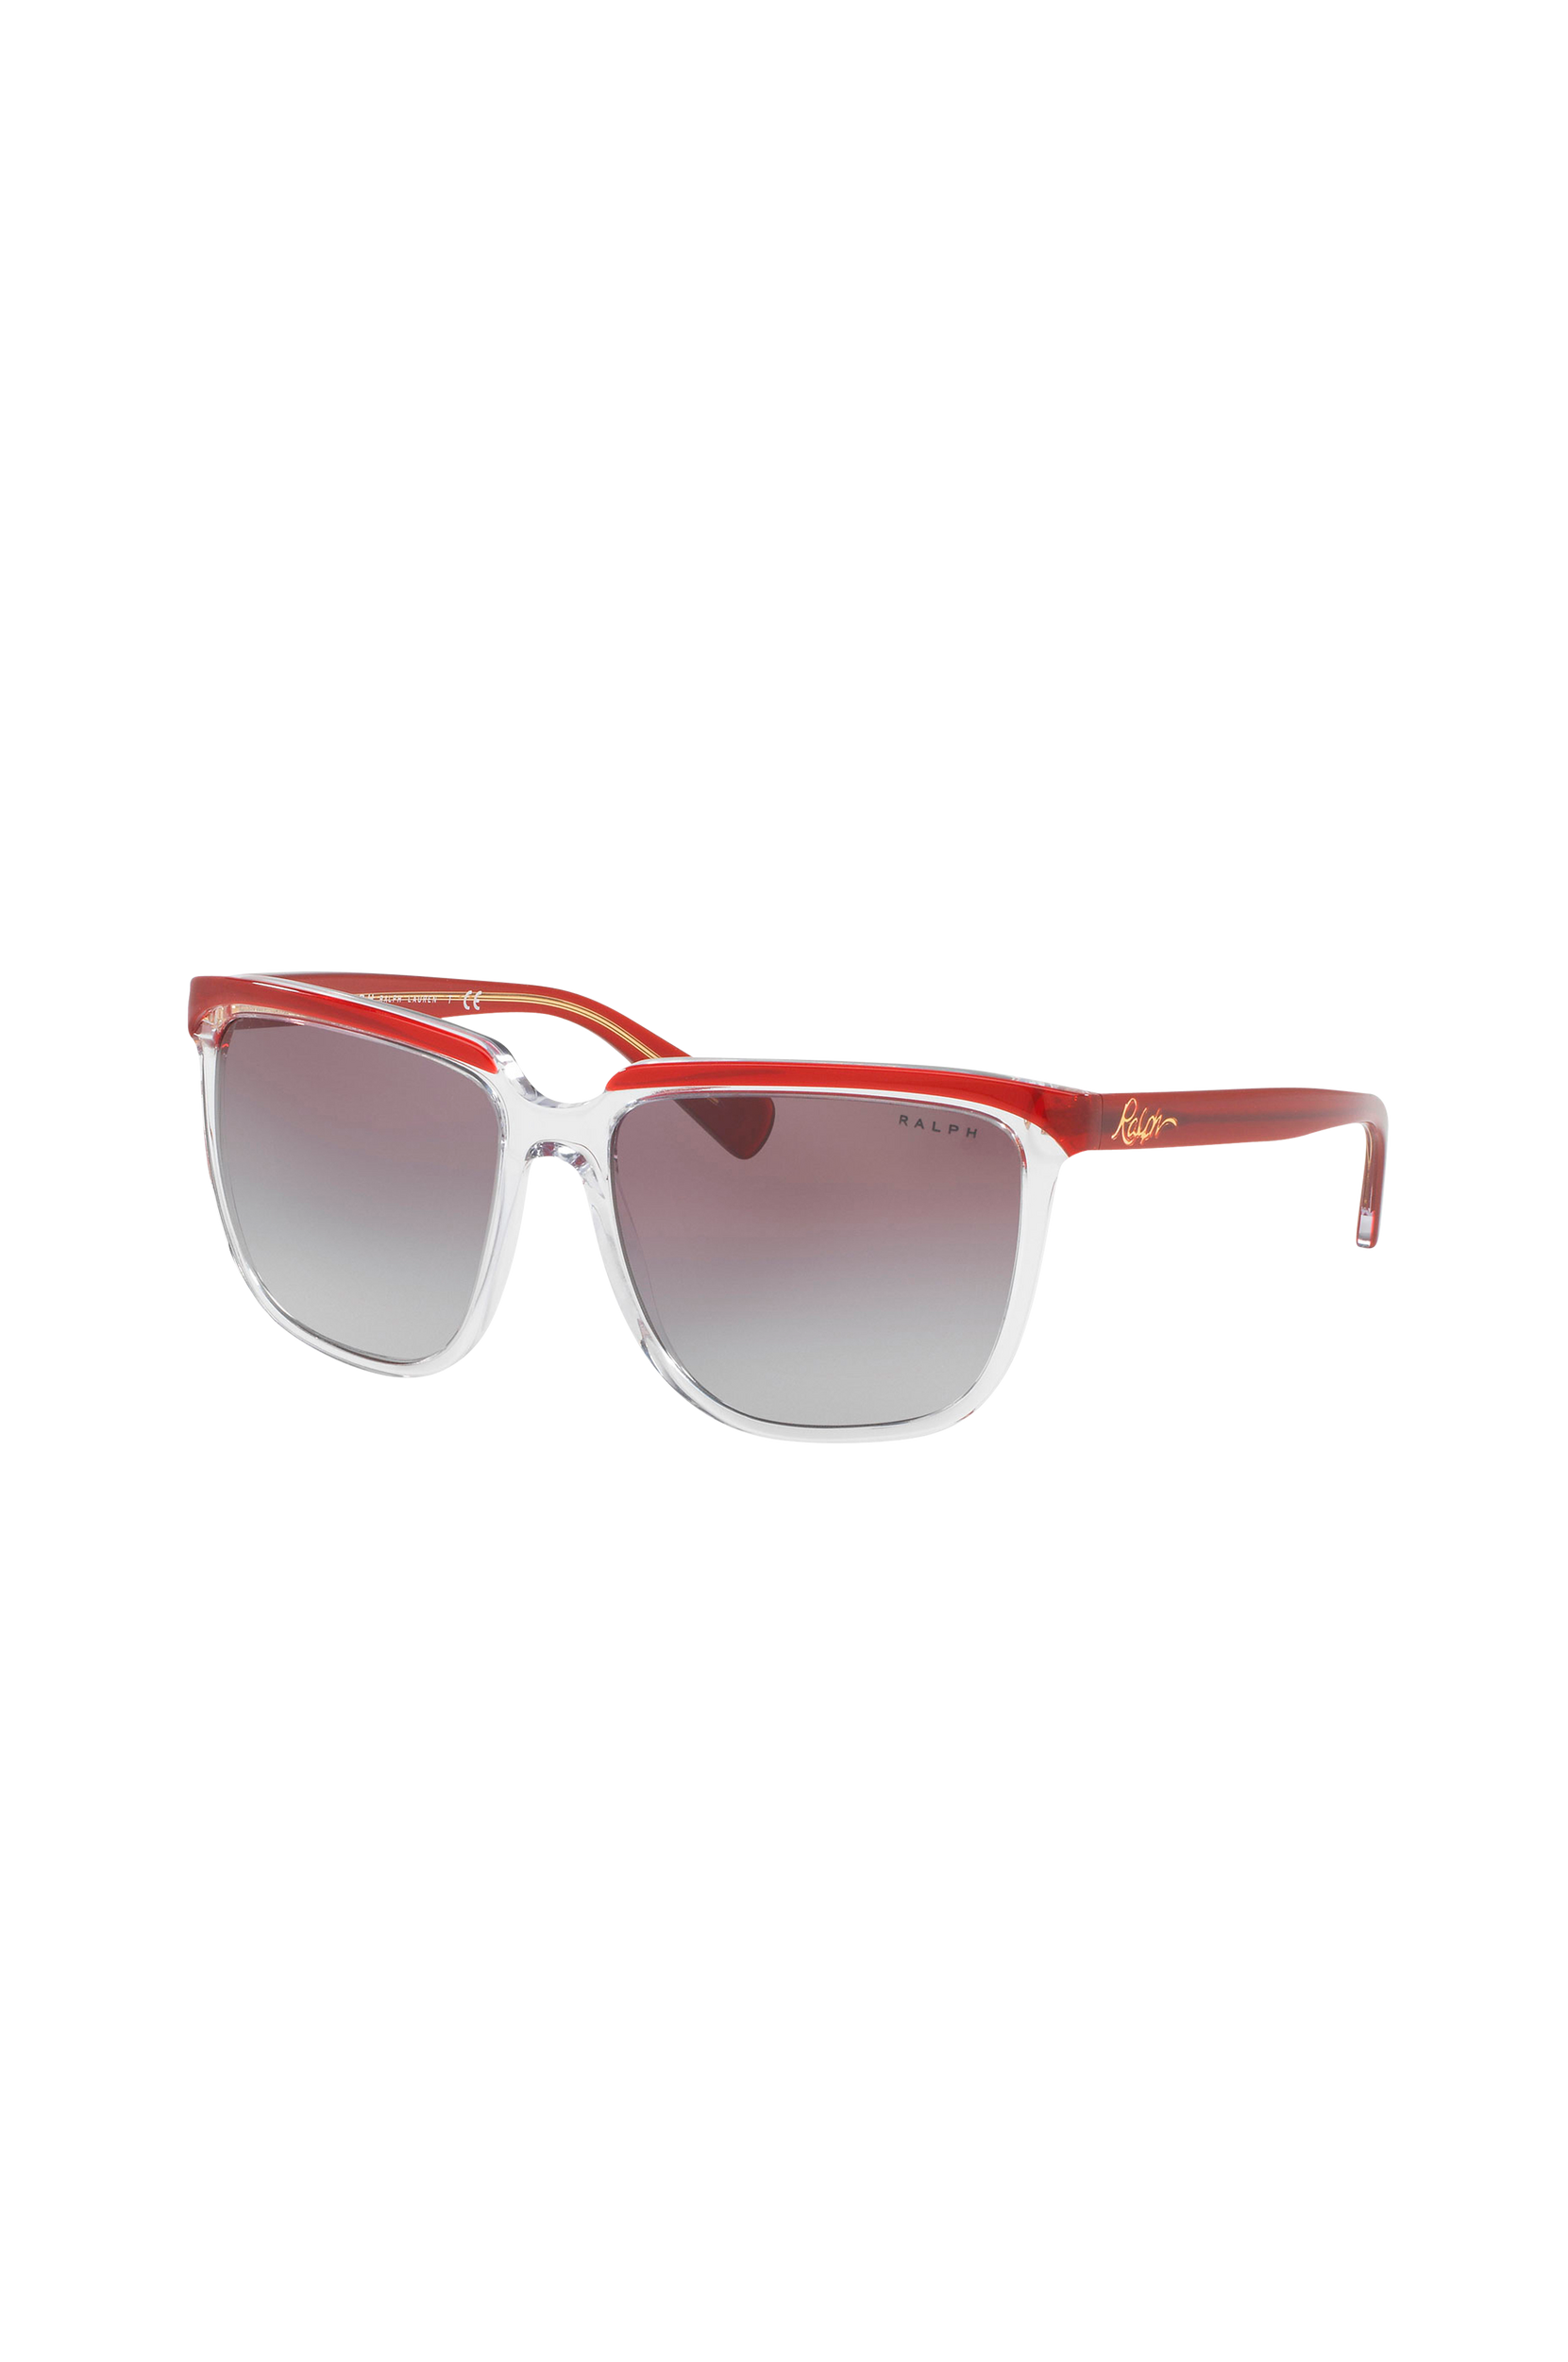 Solbriller Essentials Ra5214 Red Crystal Ralph Lauren Accessories til Kvinder i